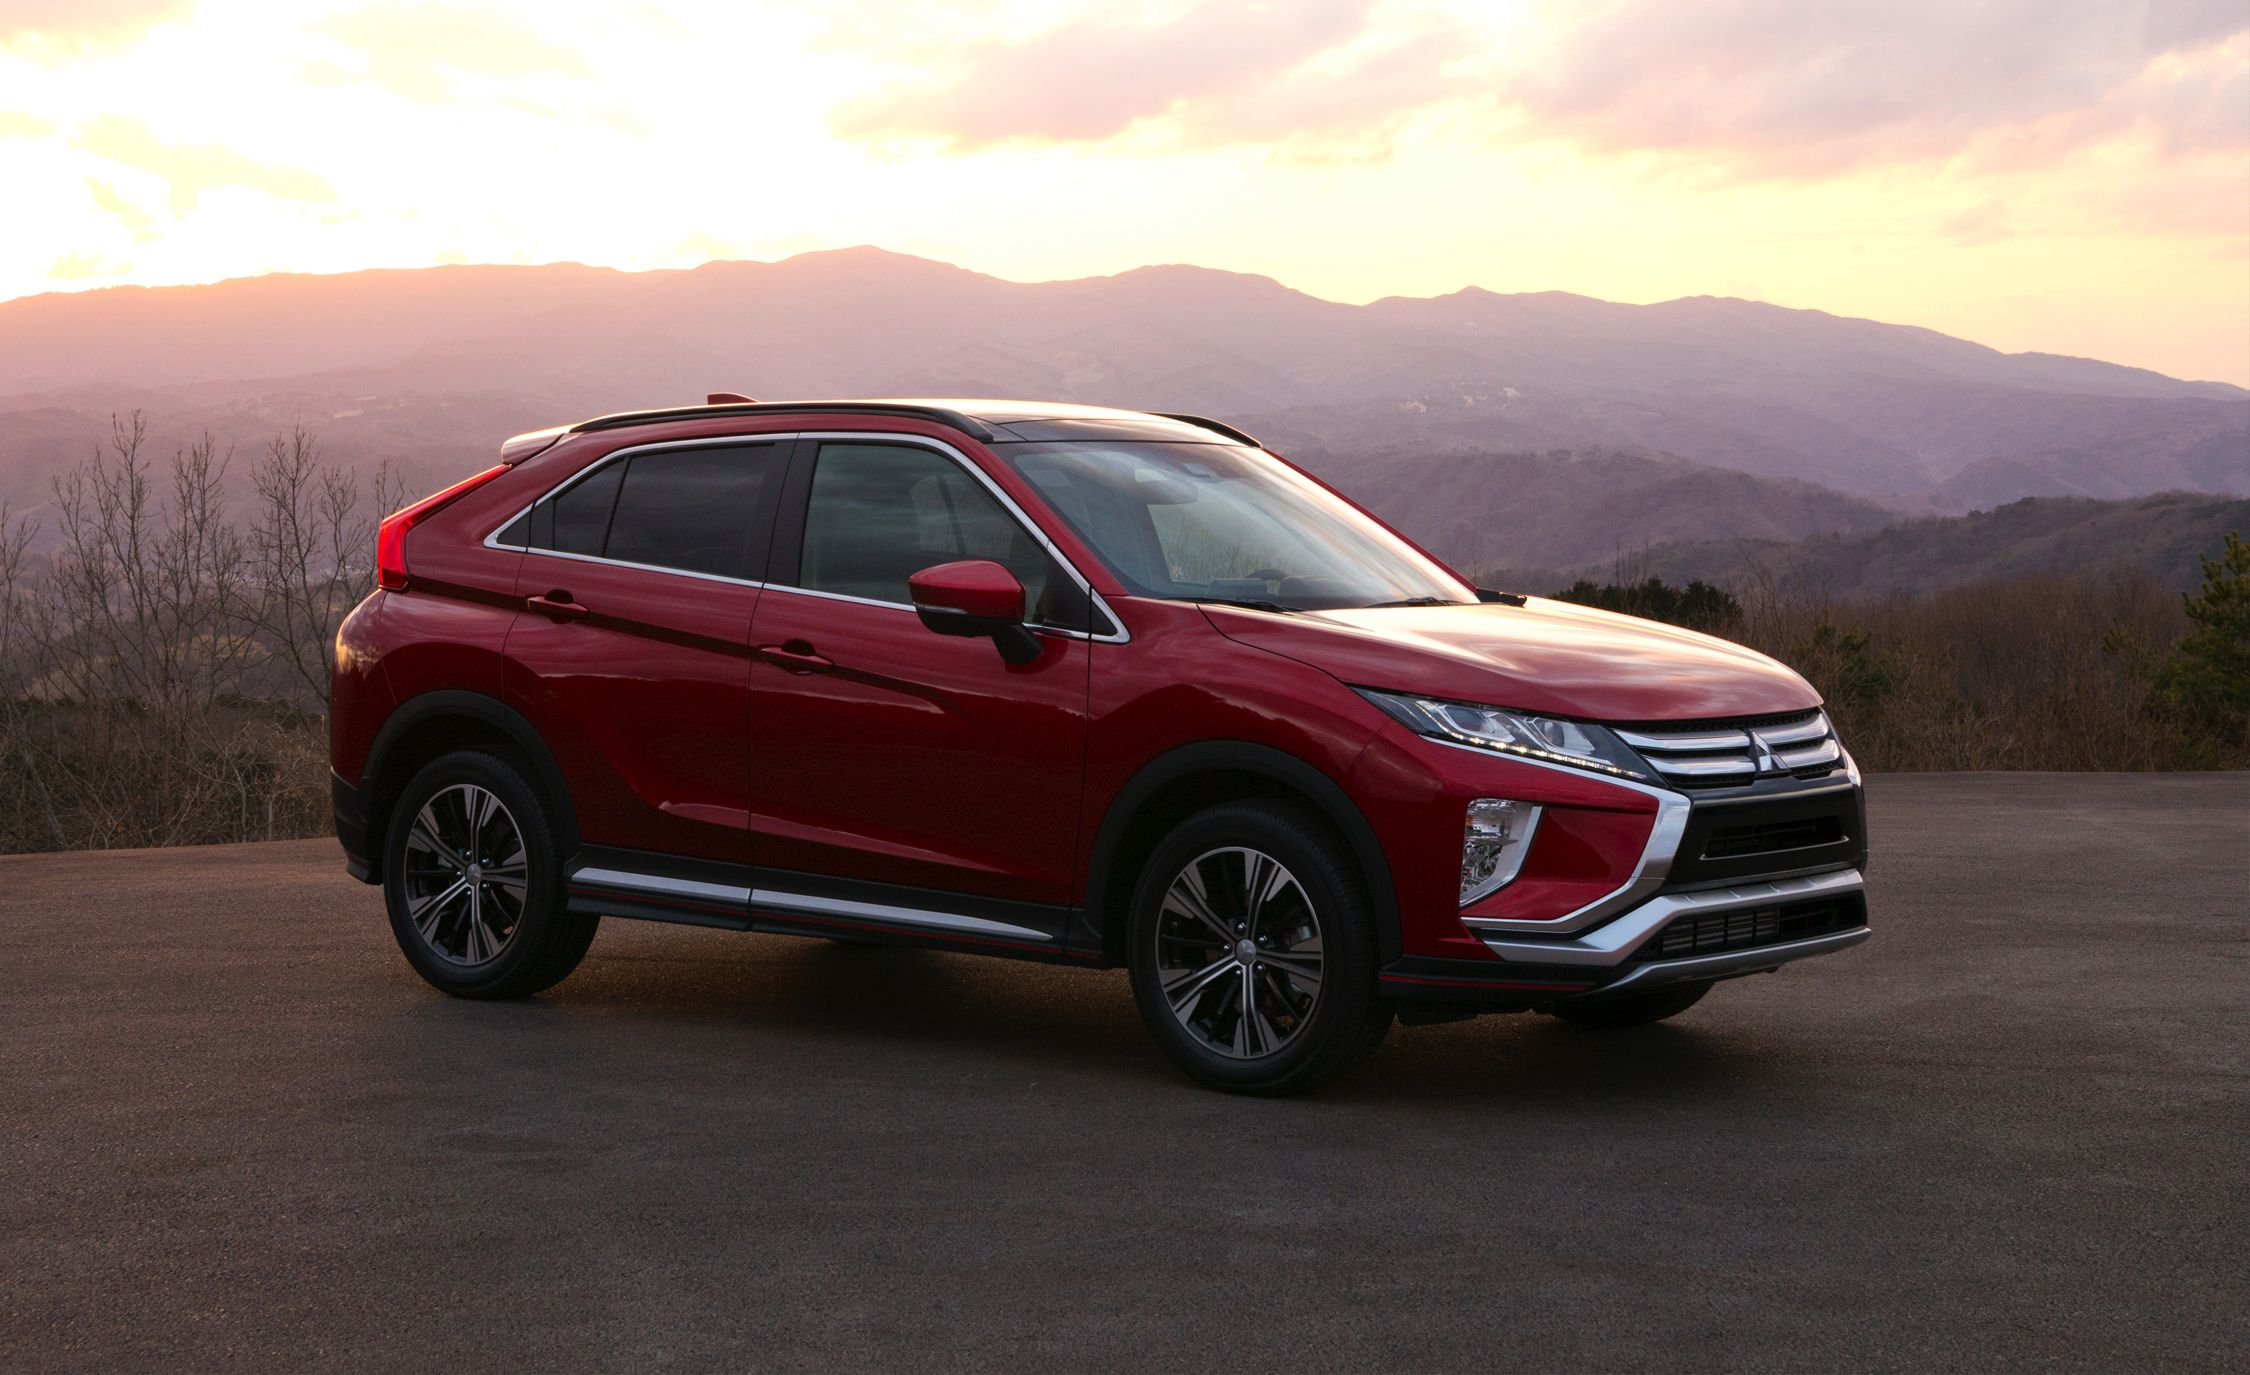 2019 Mitsubishi Eclipse Cross Reviews Mitsubishi Eclipse Cross